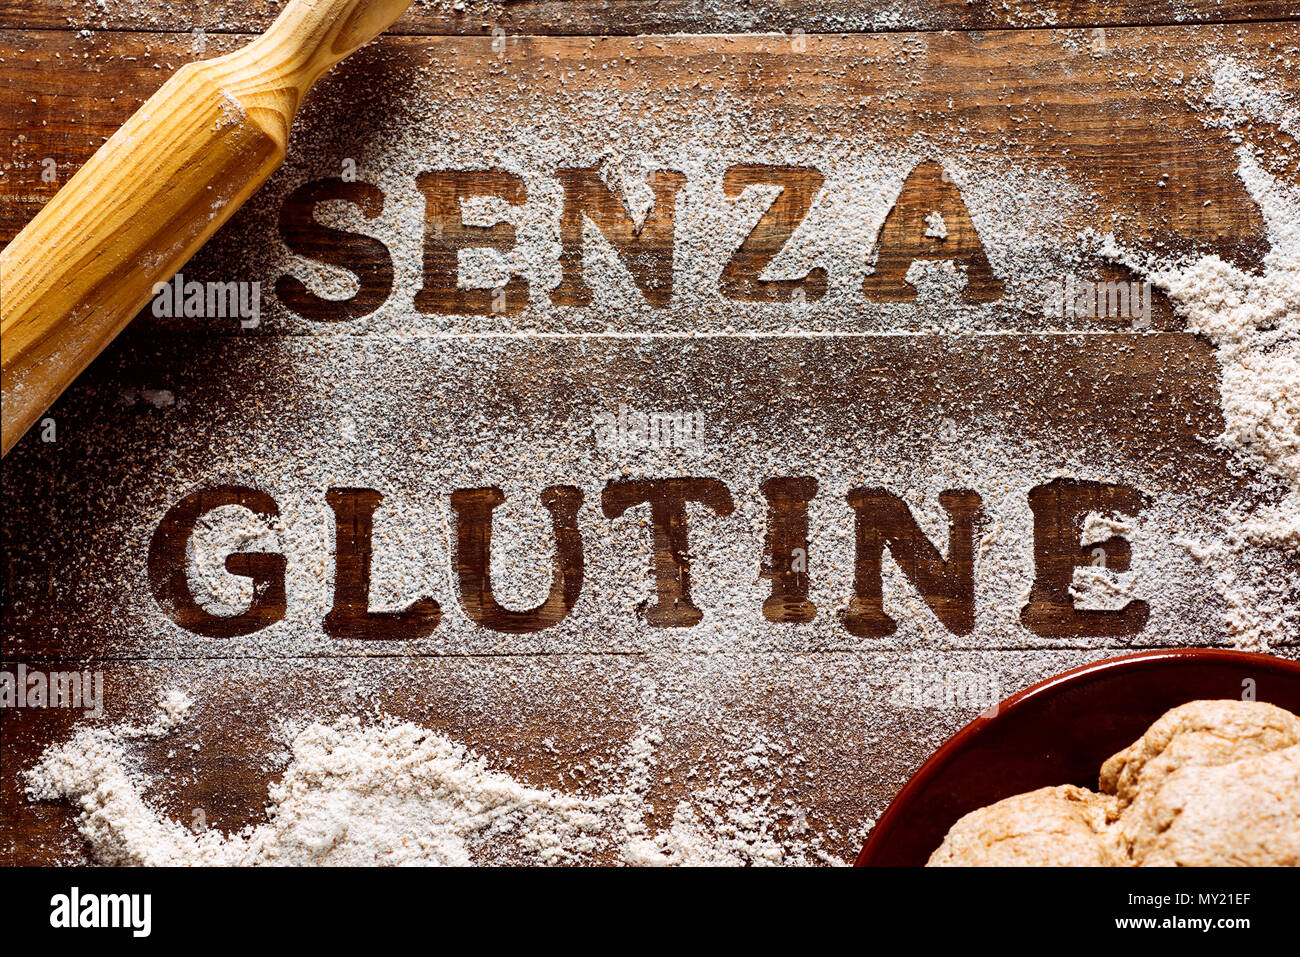 high angle view of a wooden table sprinkled with a gluten free flour where you can read the text senza glutine, gluten free in italian, next to a roll - Stock Image